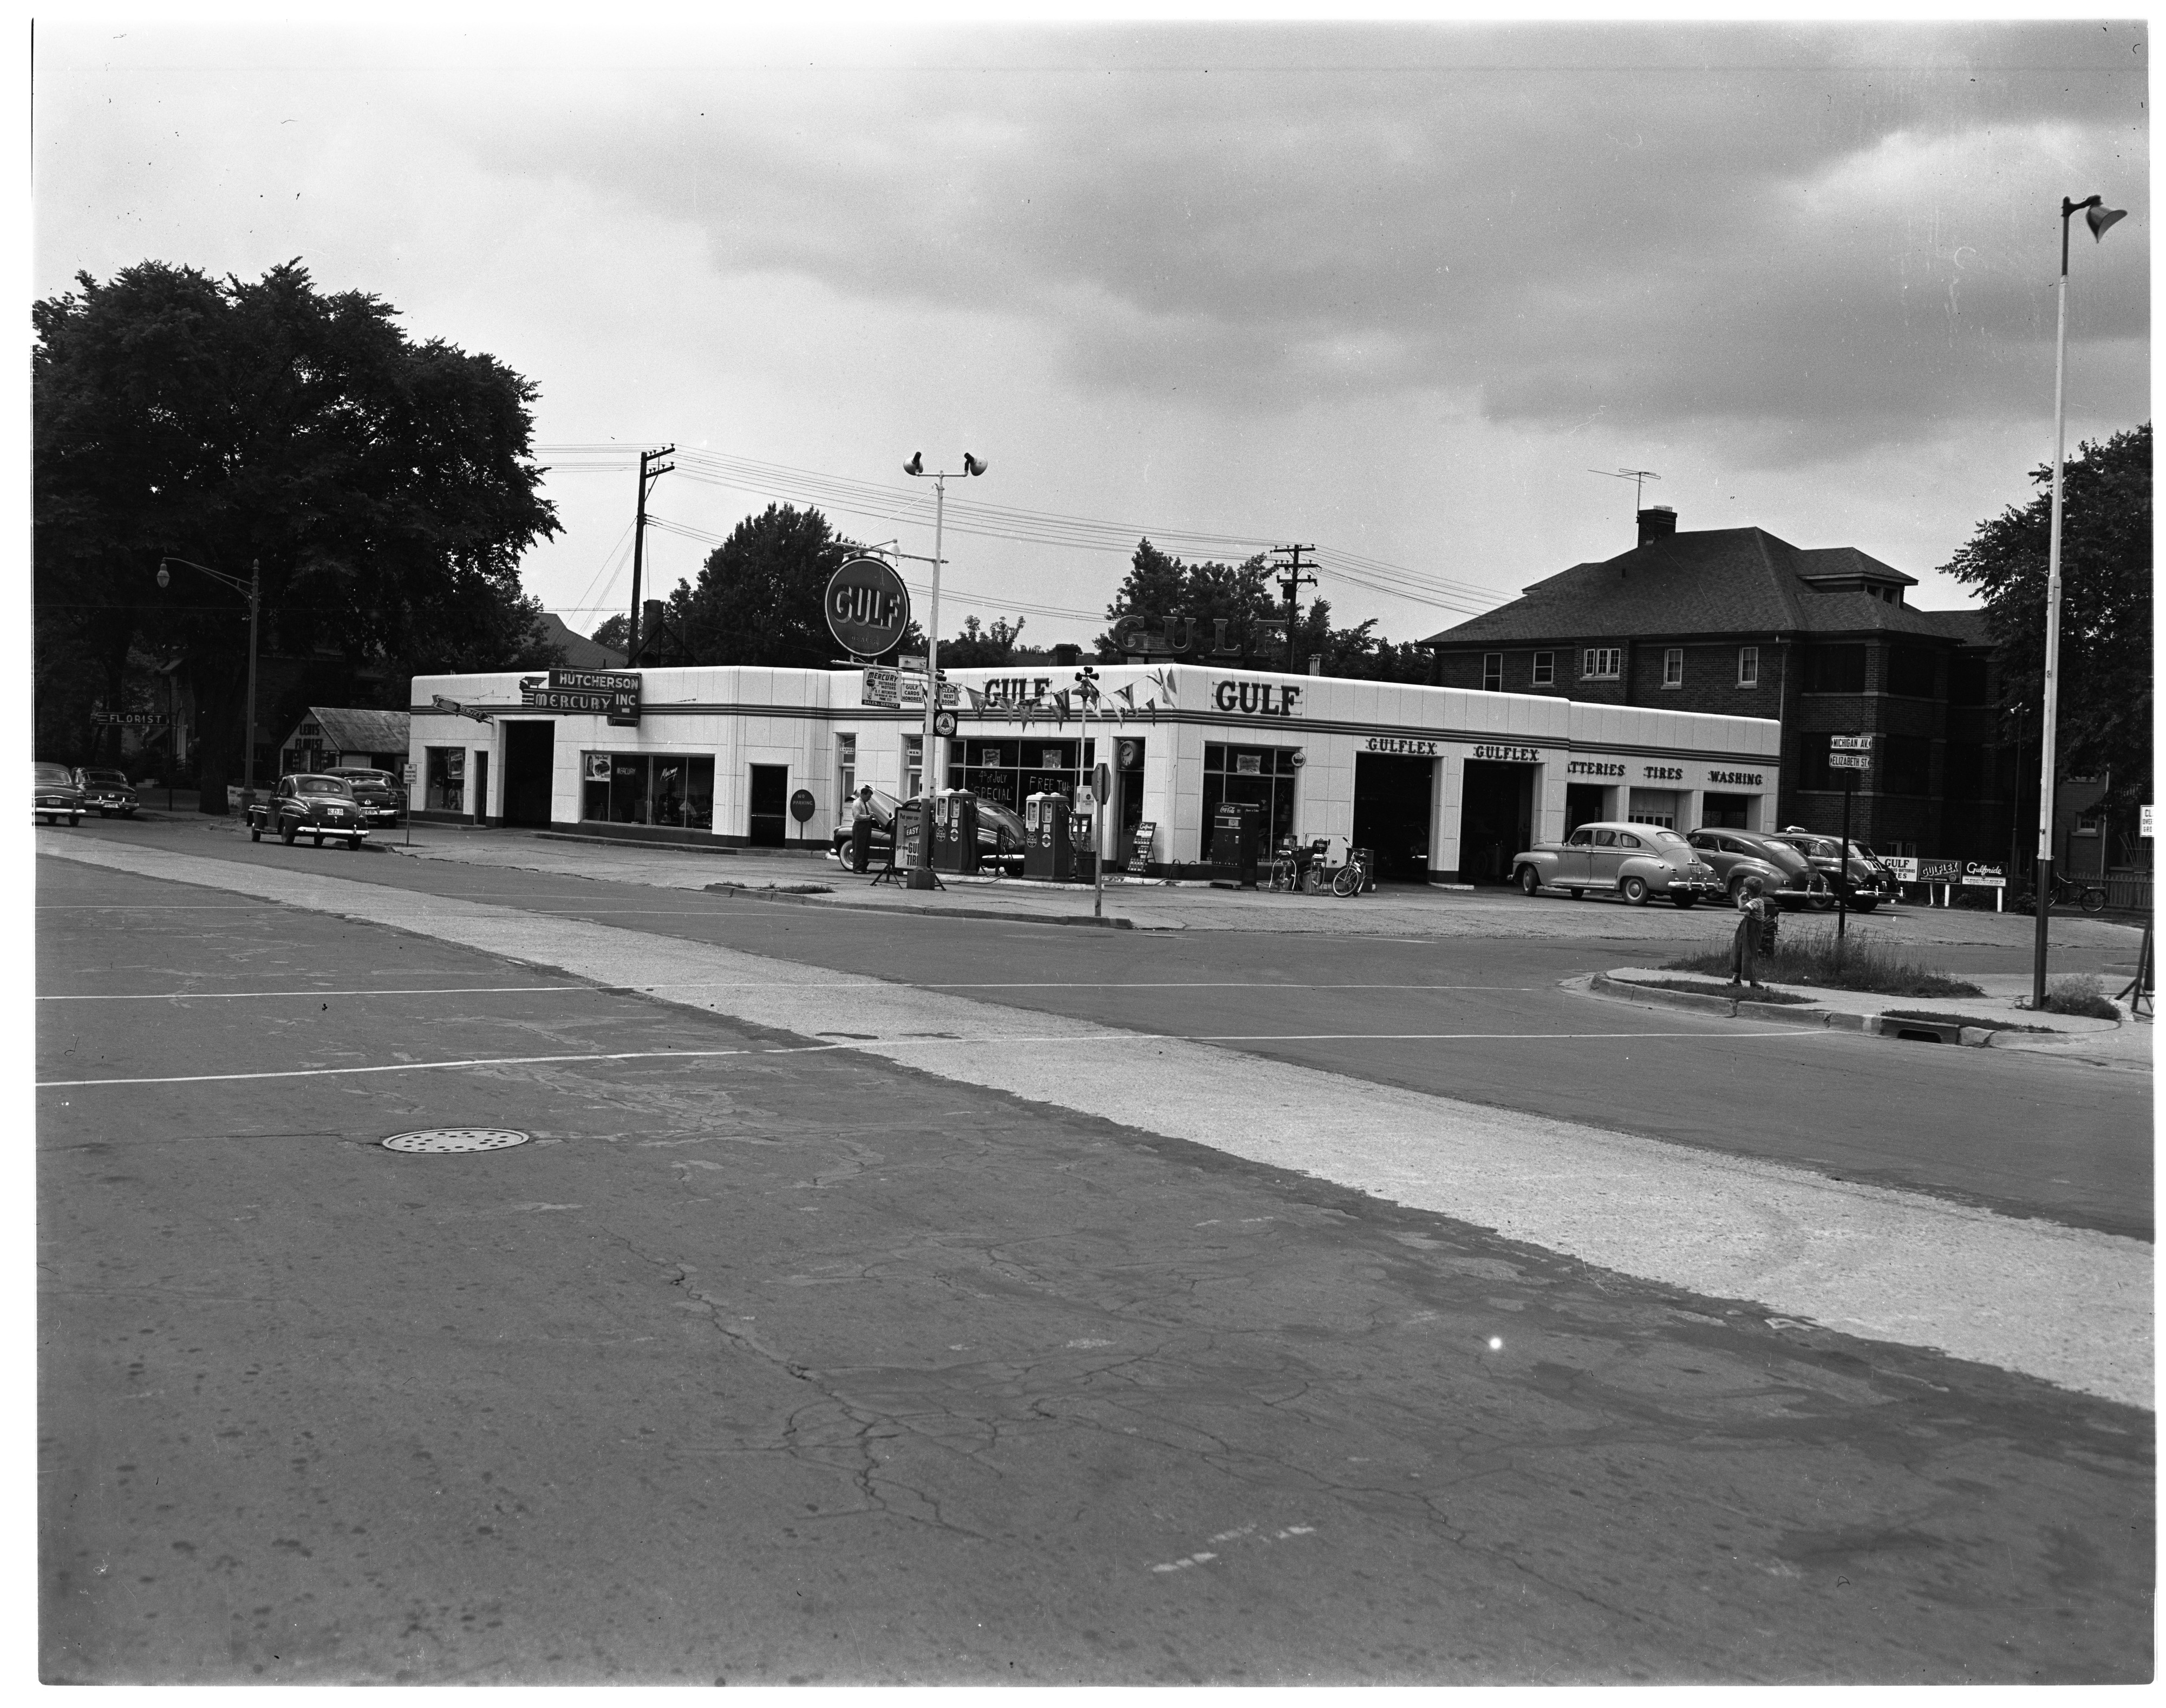 Gulf Gas Station, Corner of Michigan Ave. and Elizabeth St., Wayne, August 1950 image